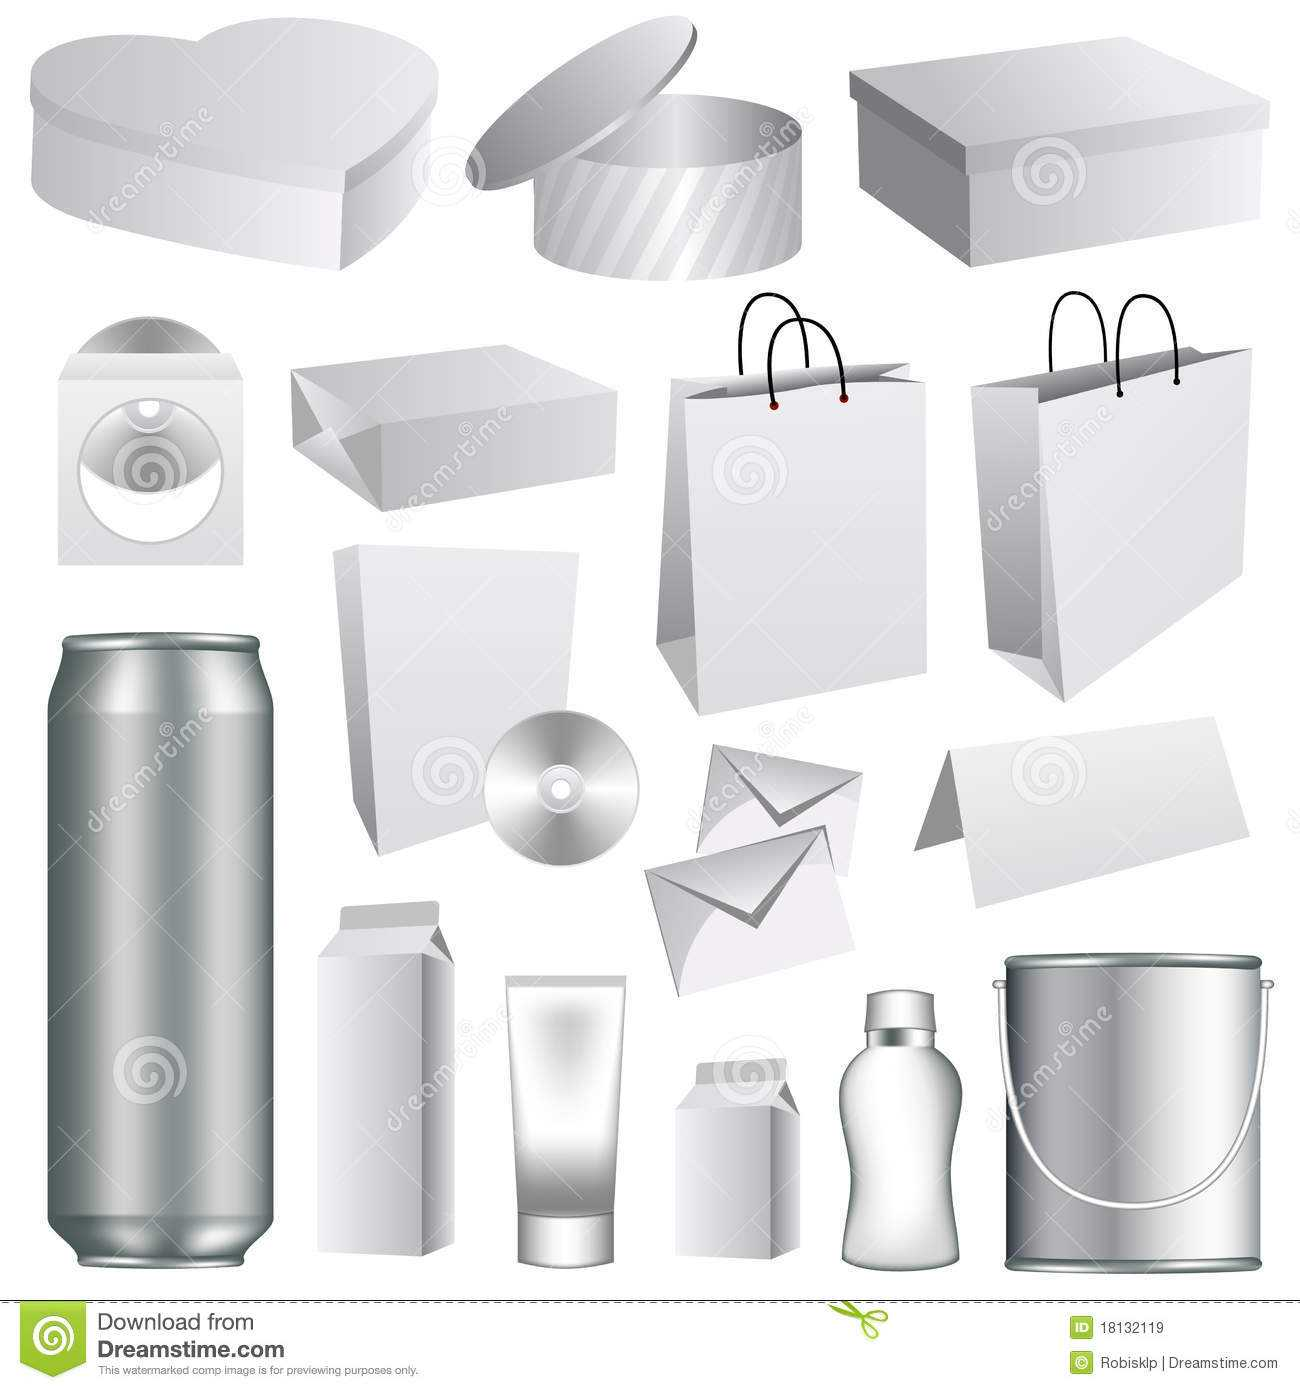 Blank Packaging Templates Stock Vector. Illustration Of Throughout Blank Packaging Templates